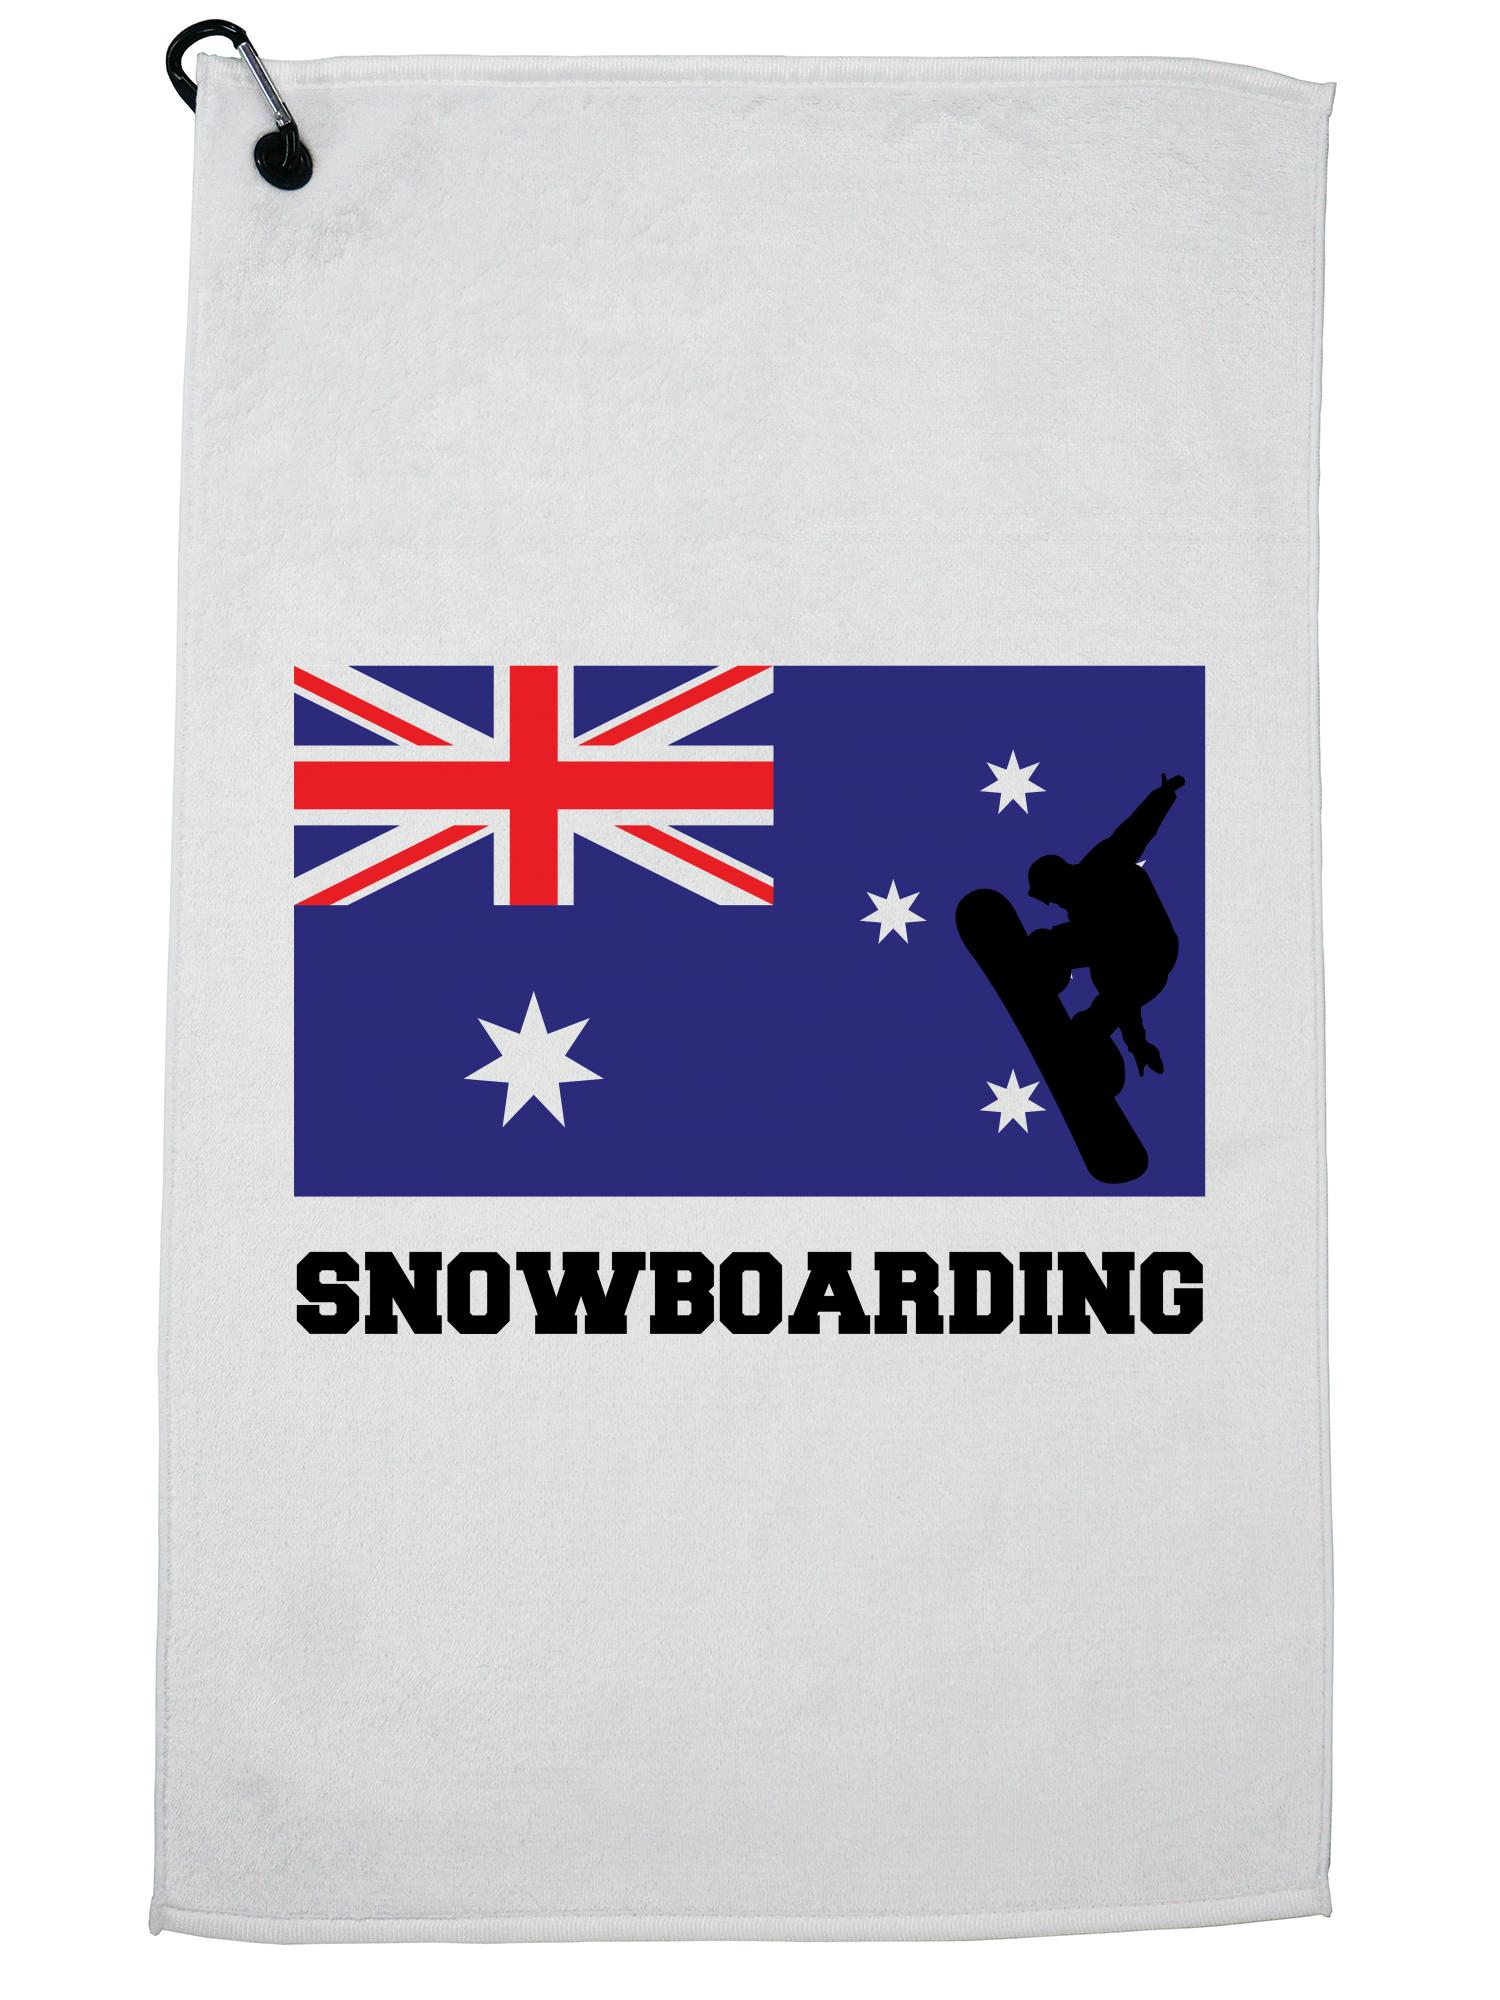 Australia Olympic Snowboarding AUS Flag Silhouette Golf Towel with Carabiner Clip by Hollywood Thread